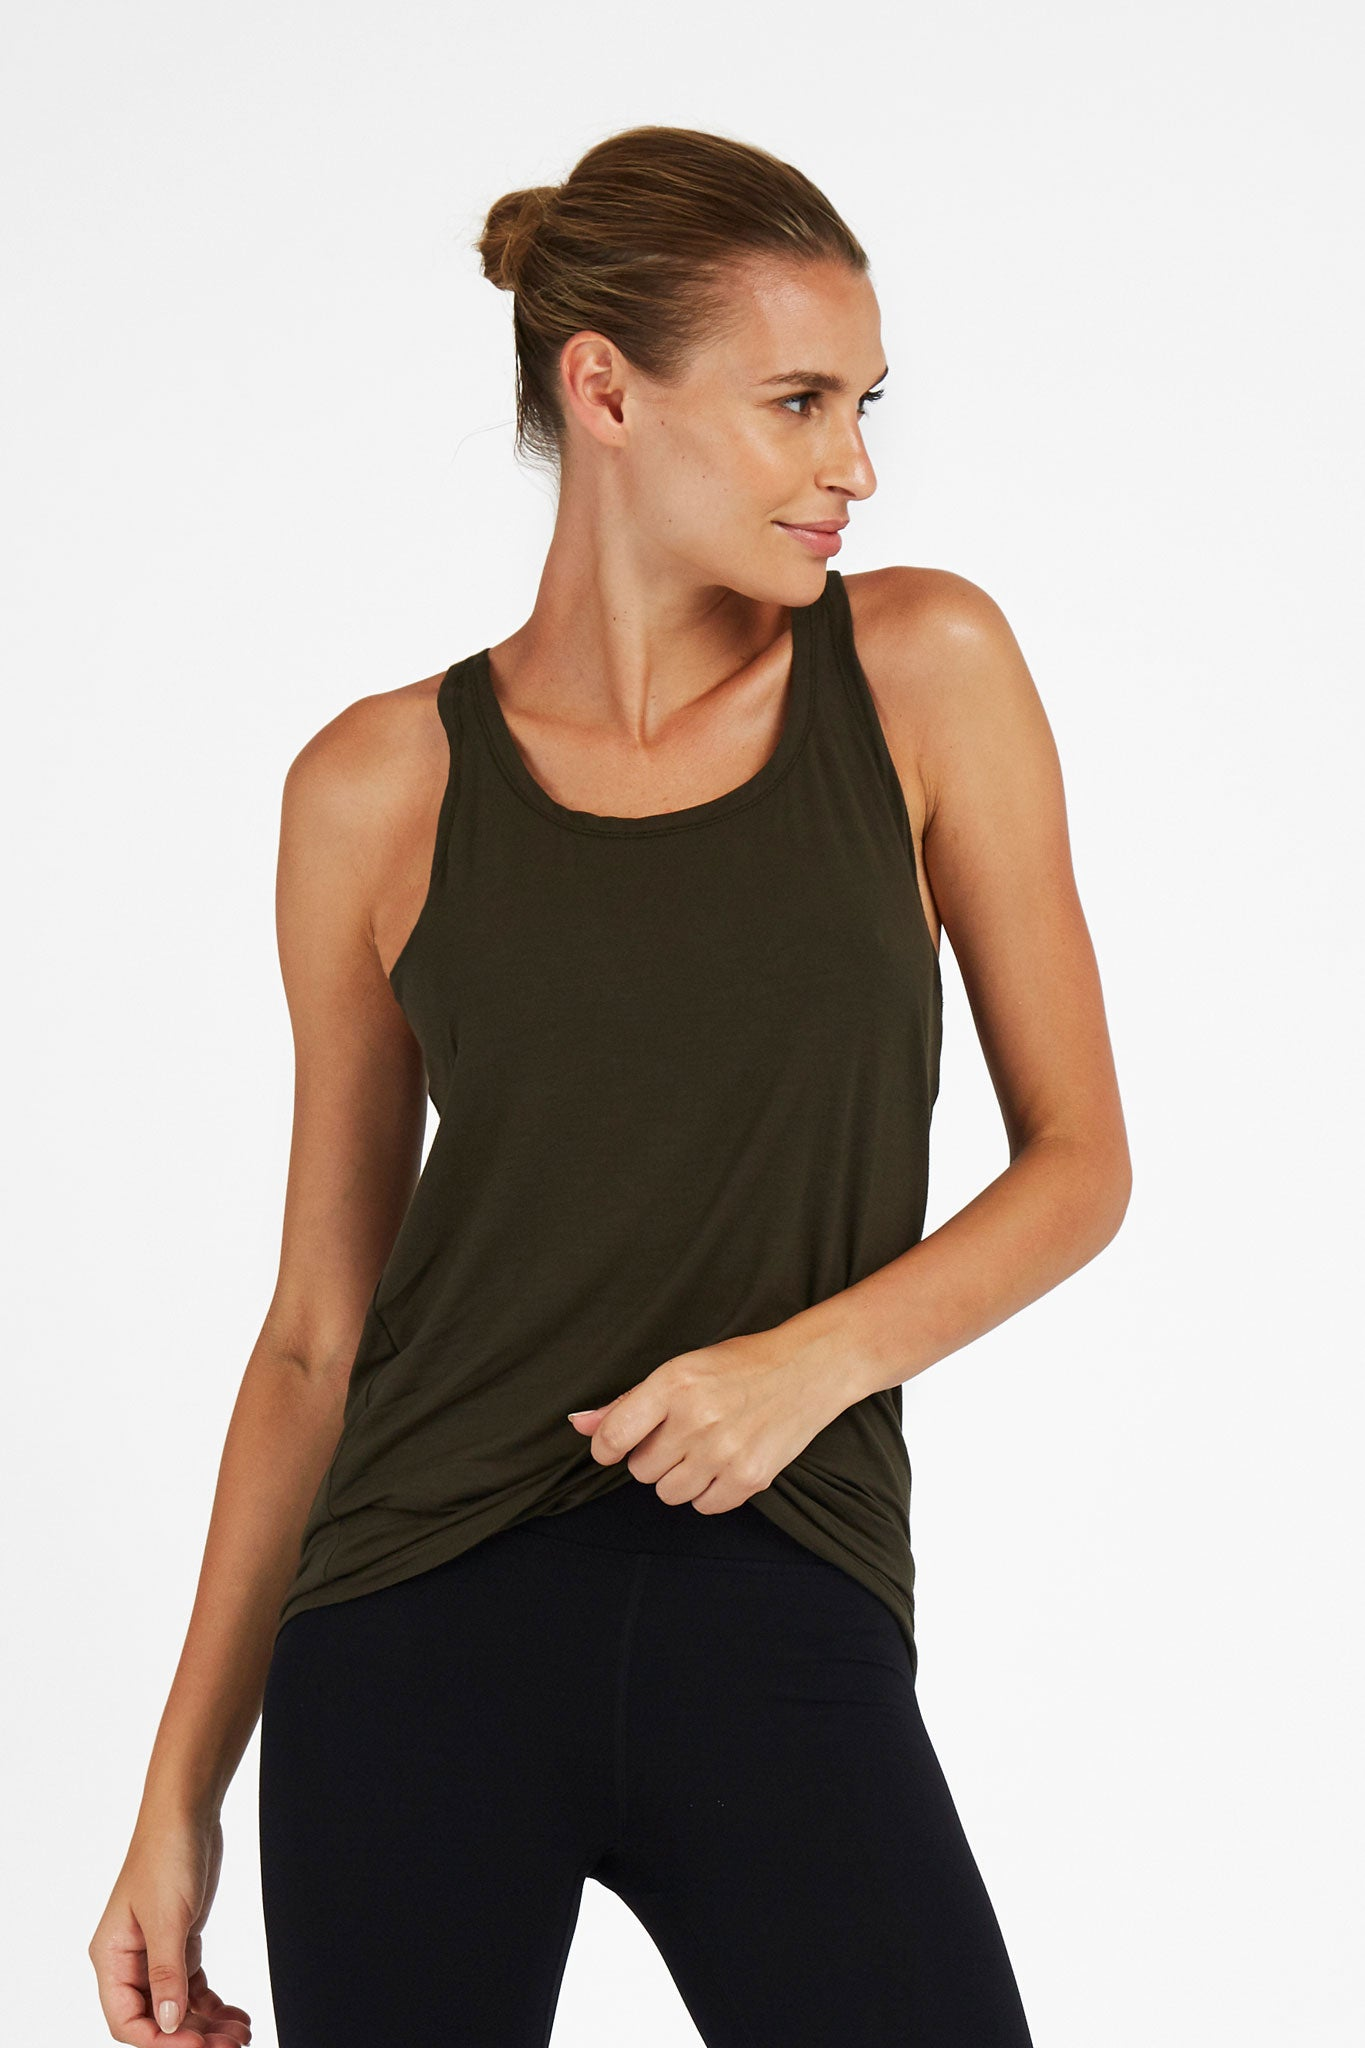 'Twisted Back Tee' Top - Bamboo - Khaki